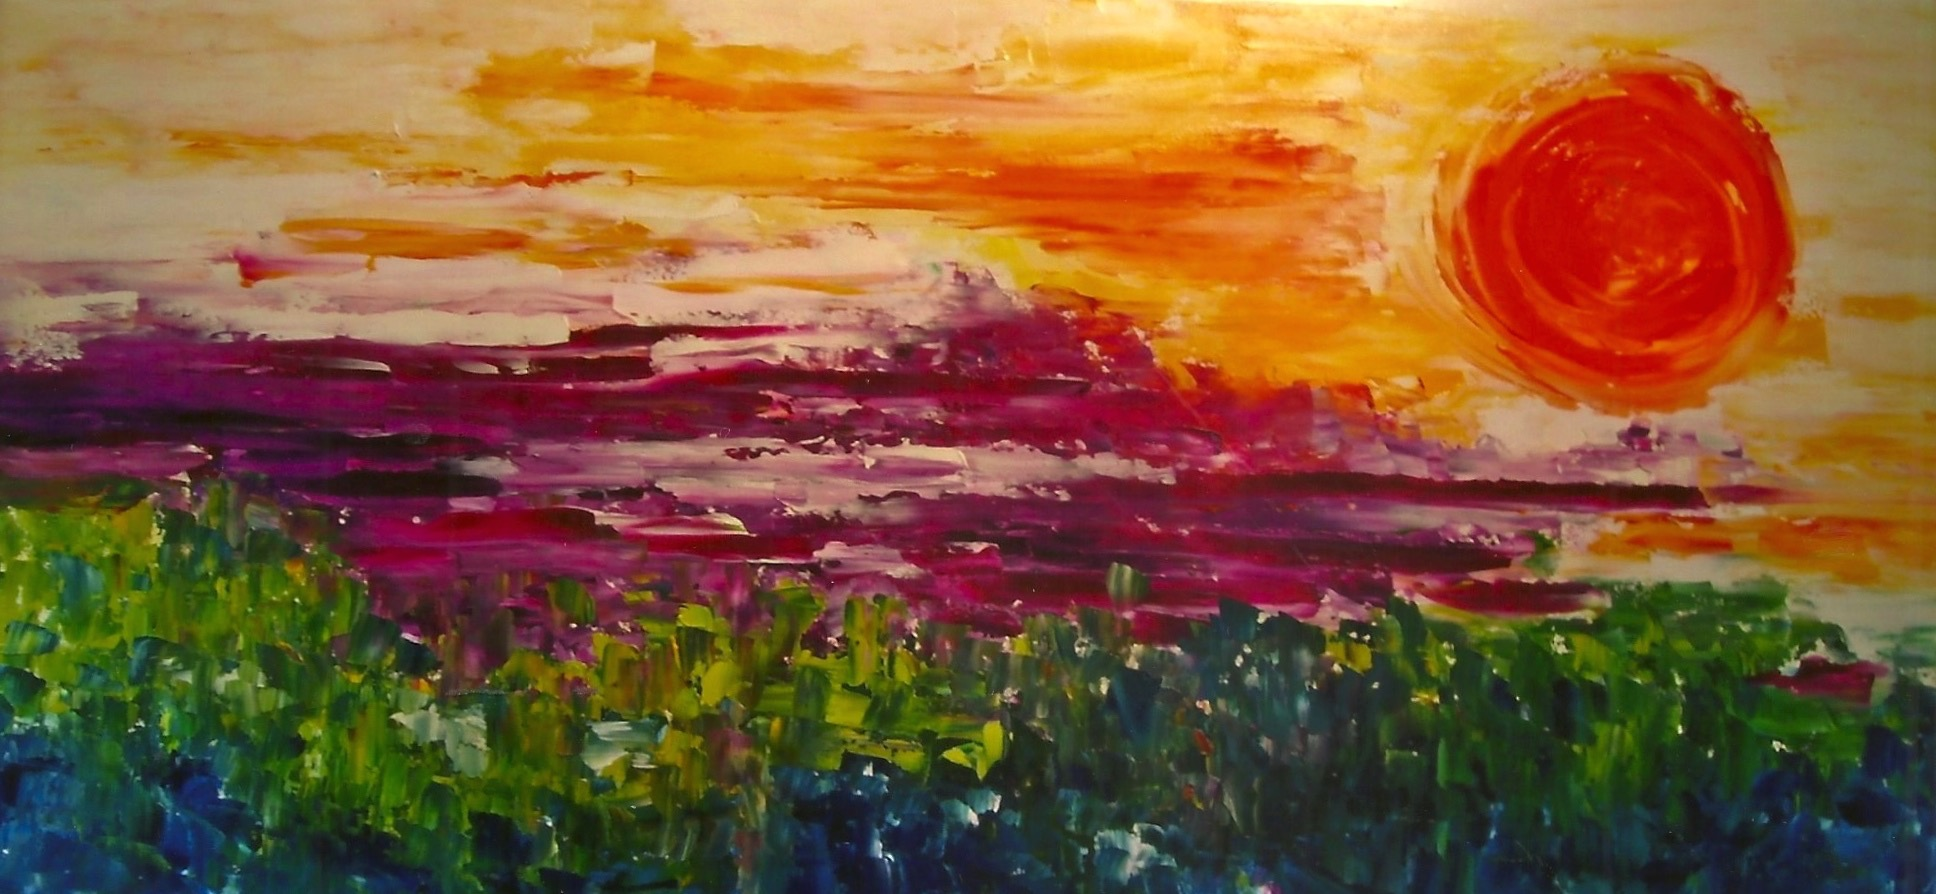 Sunset Over the Chive Field (sold)